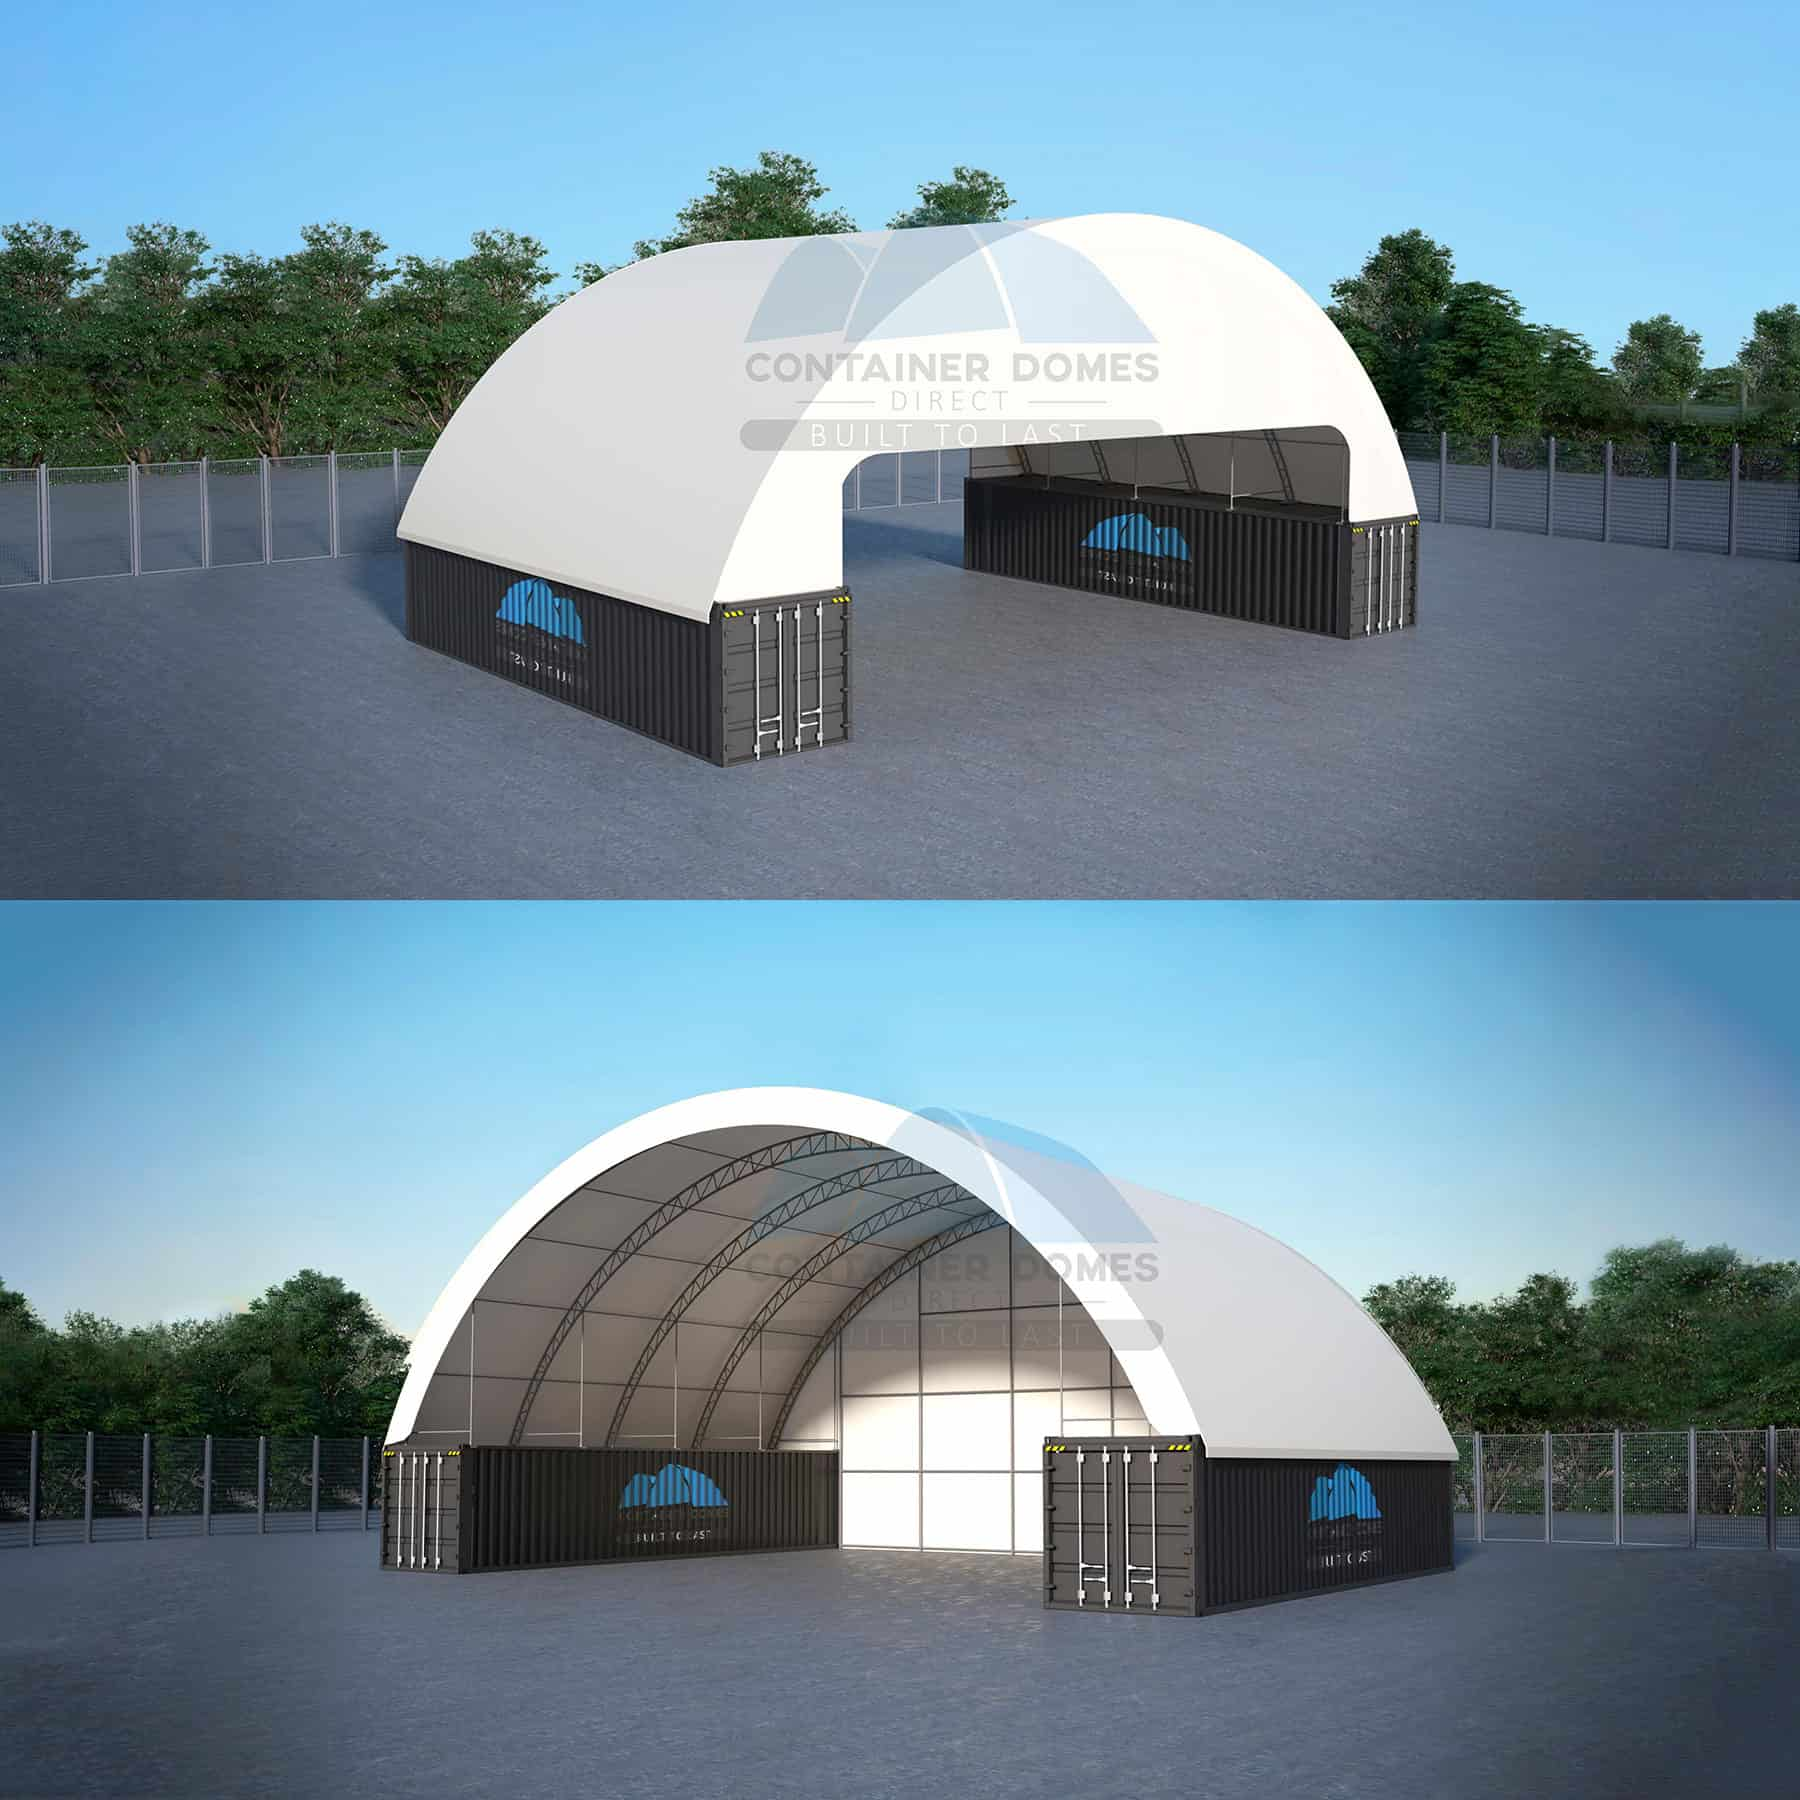 container domes cover